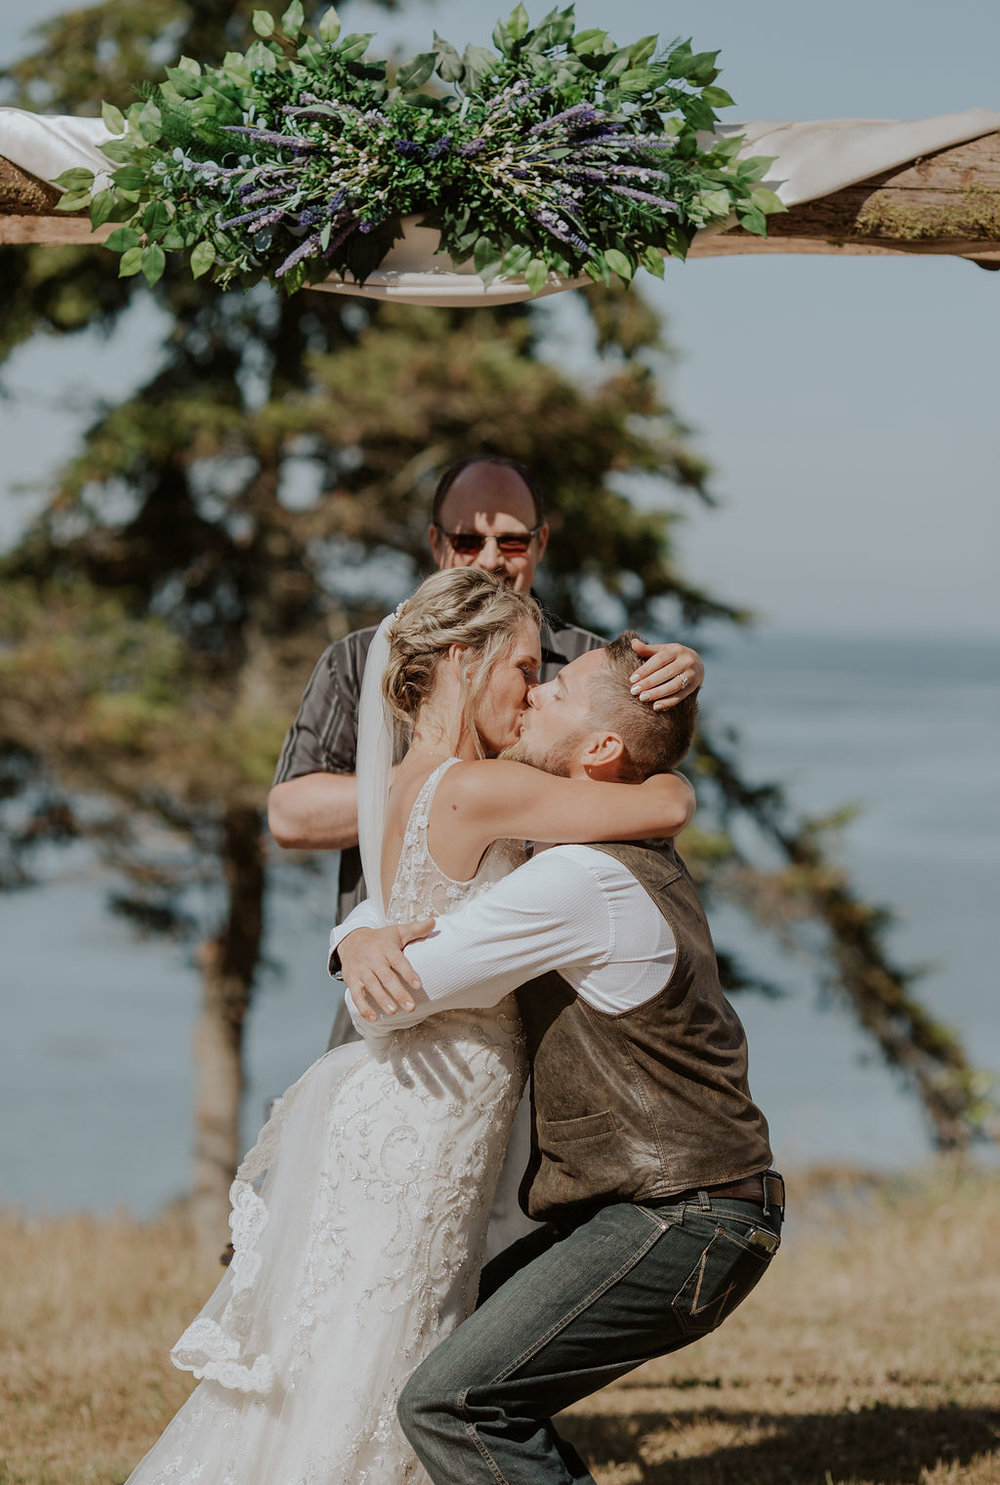 Port-Angeles-Wedding-Photographer-pnw-Whiskey-Creek-Beach-NW-Washington-couples-kayladawnphoto-kayla-dawn-photography-olympic-peninsula-hurricane-ridge-94.jpg